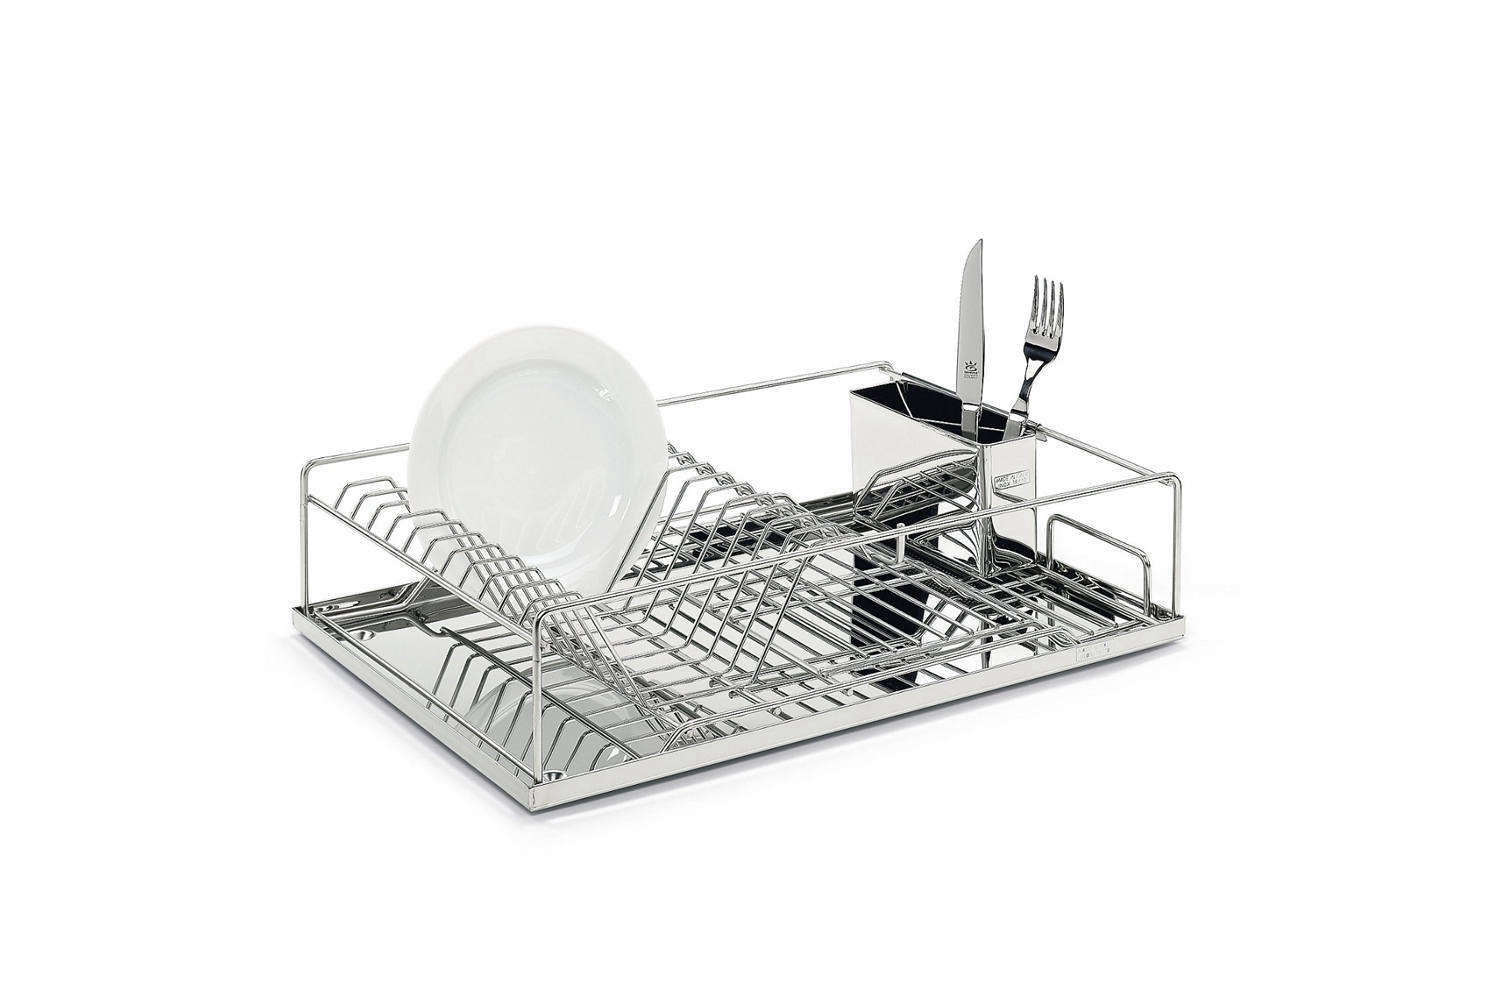 For those looking for the Mercedes of dish racks, the Stainless Steel Draining Rack isn&#8